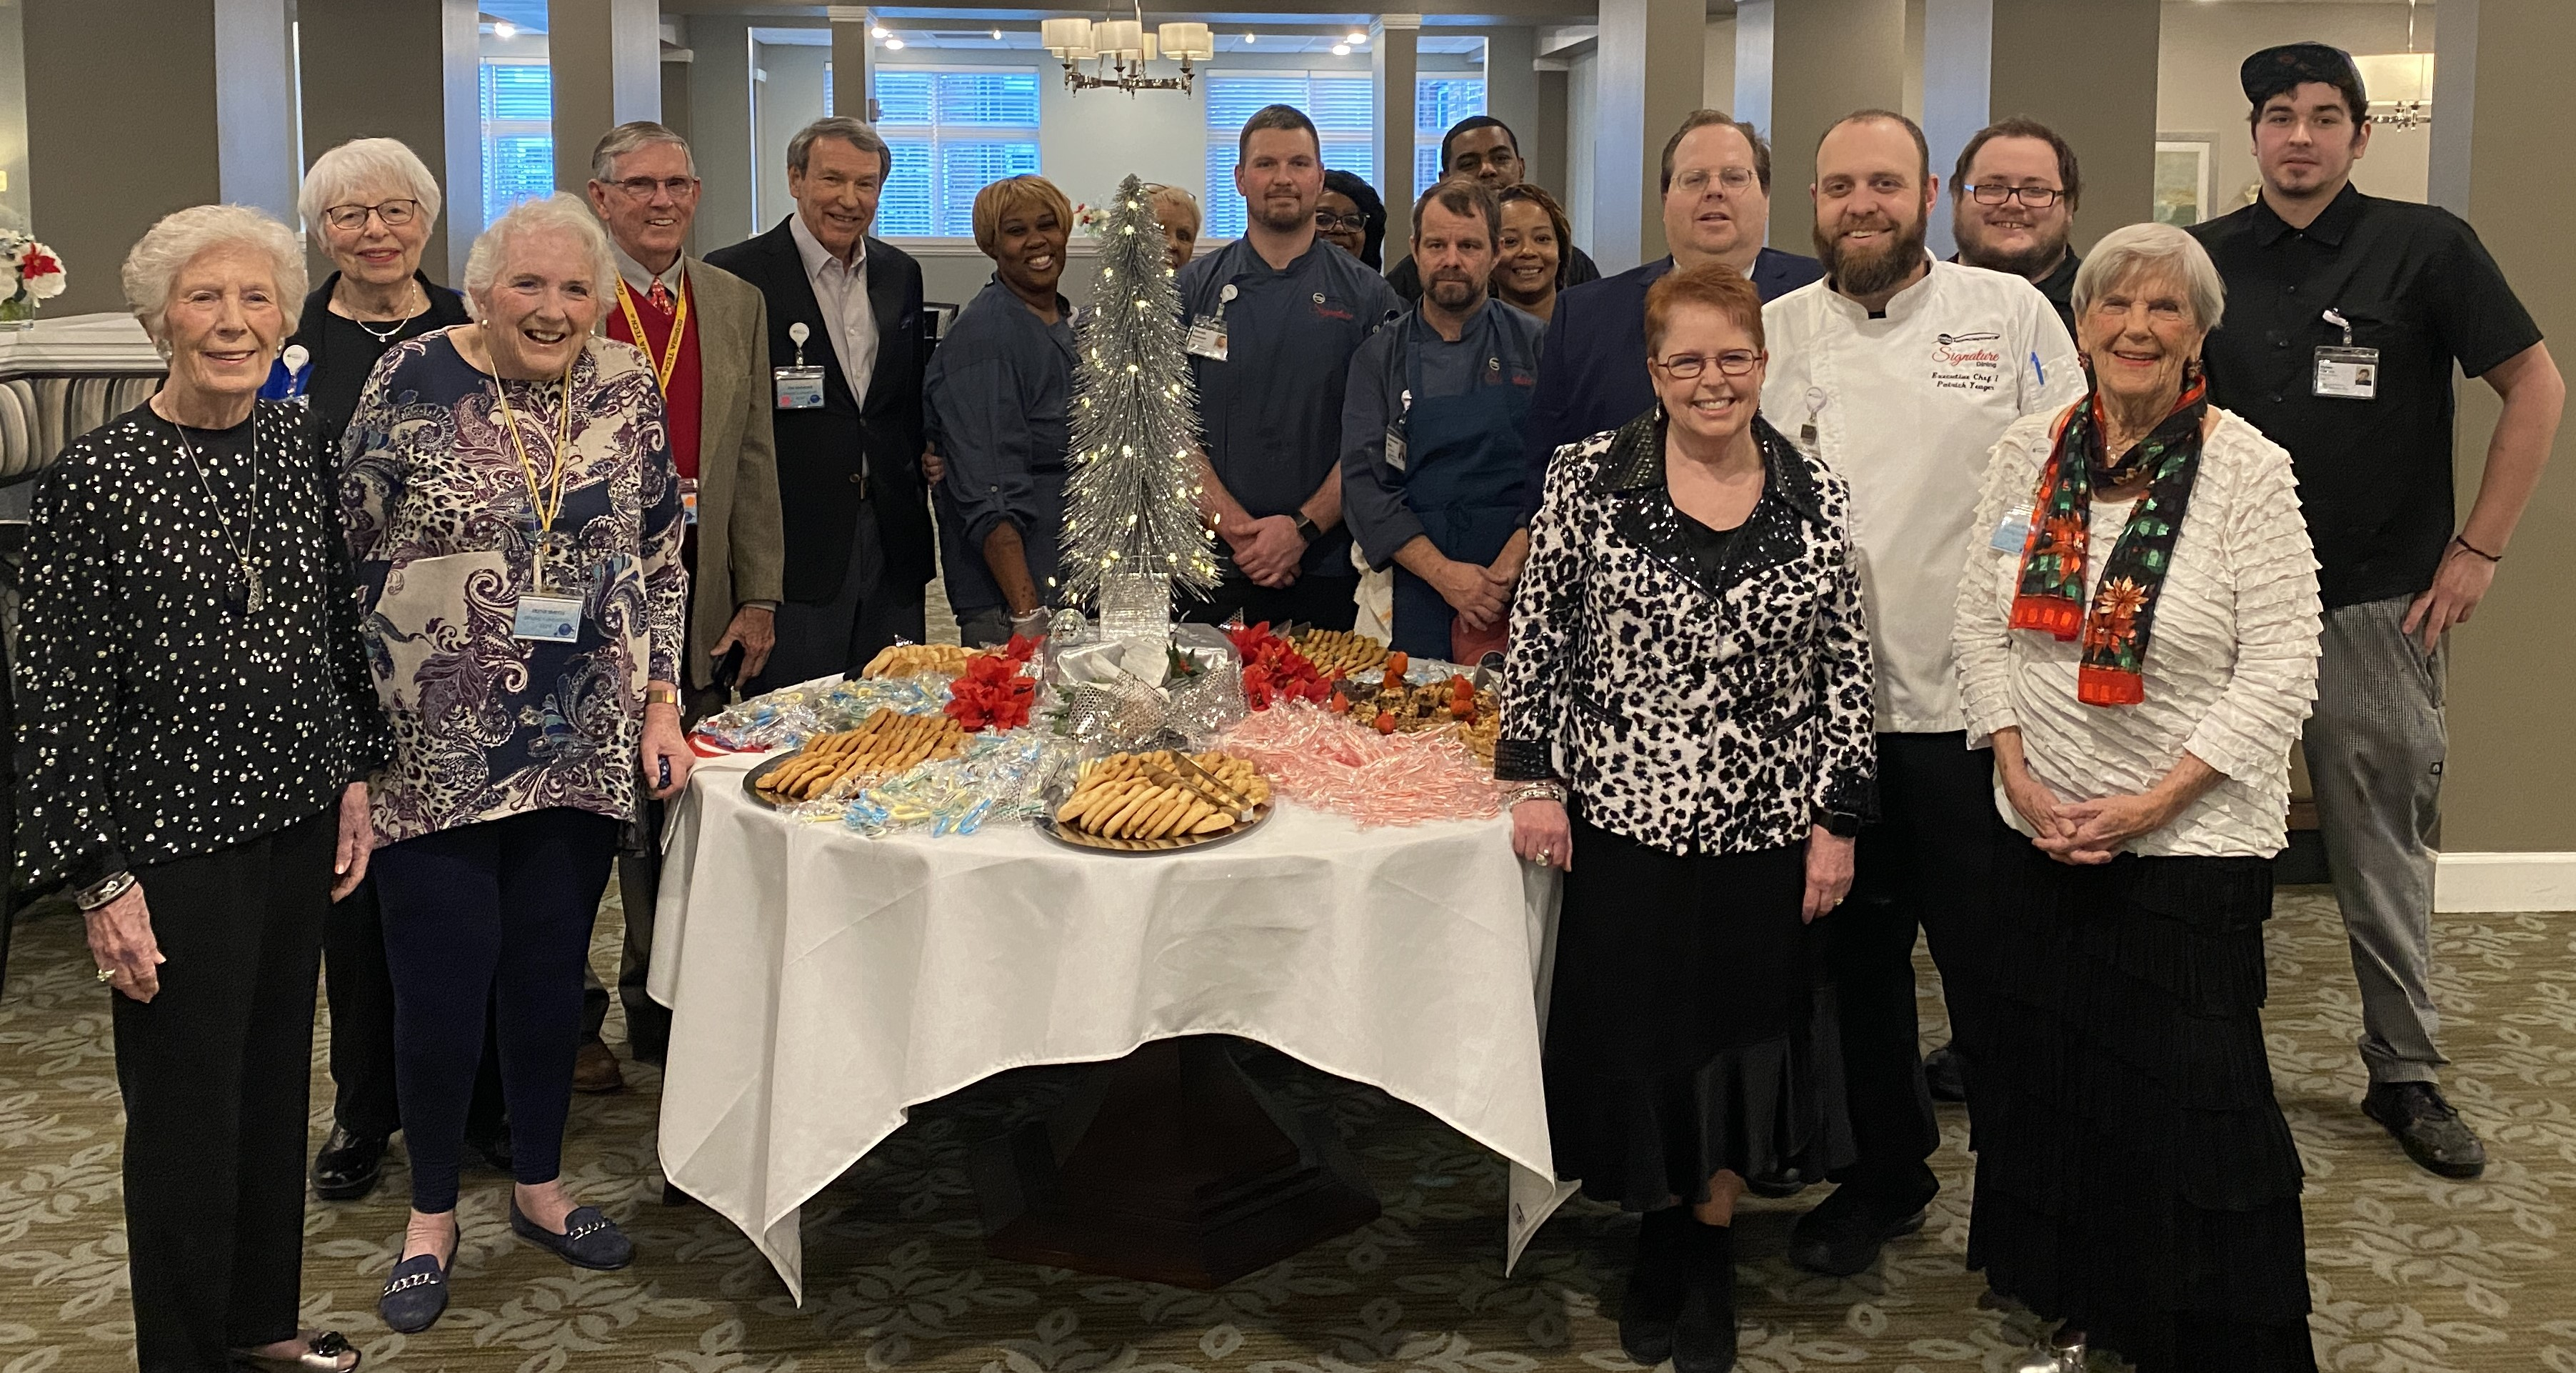 The Windsor Run Holiday Gathering is a new seasonal tradition at Windsor Run.